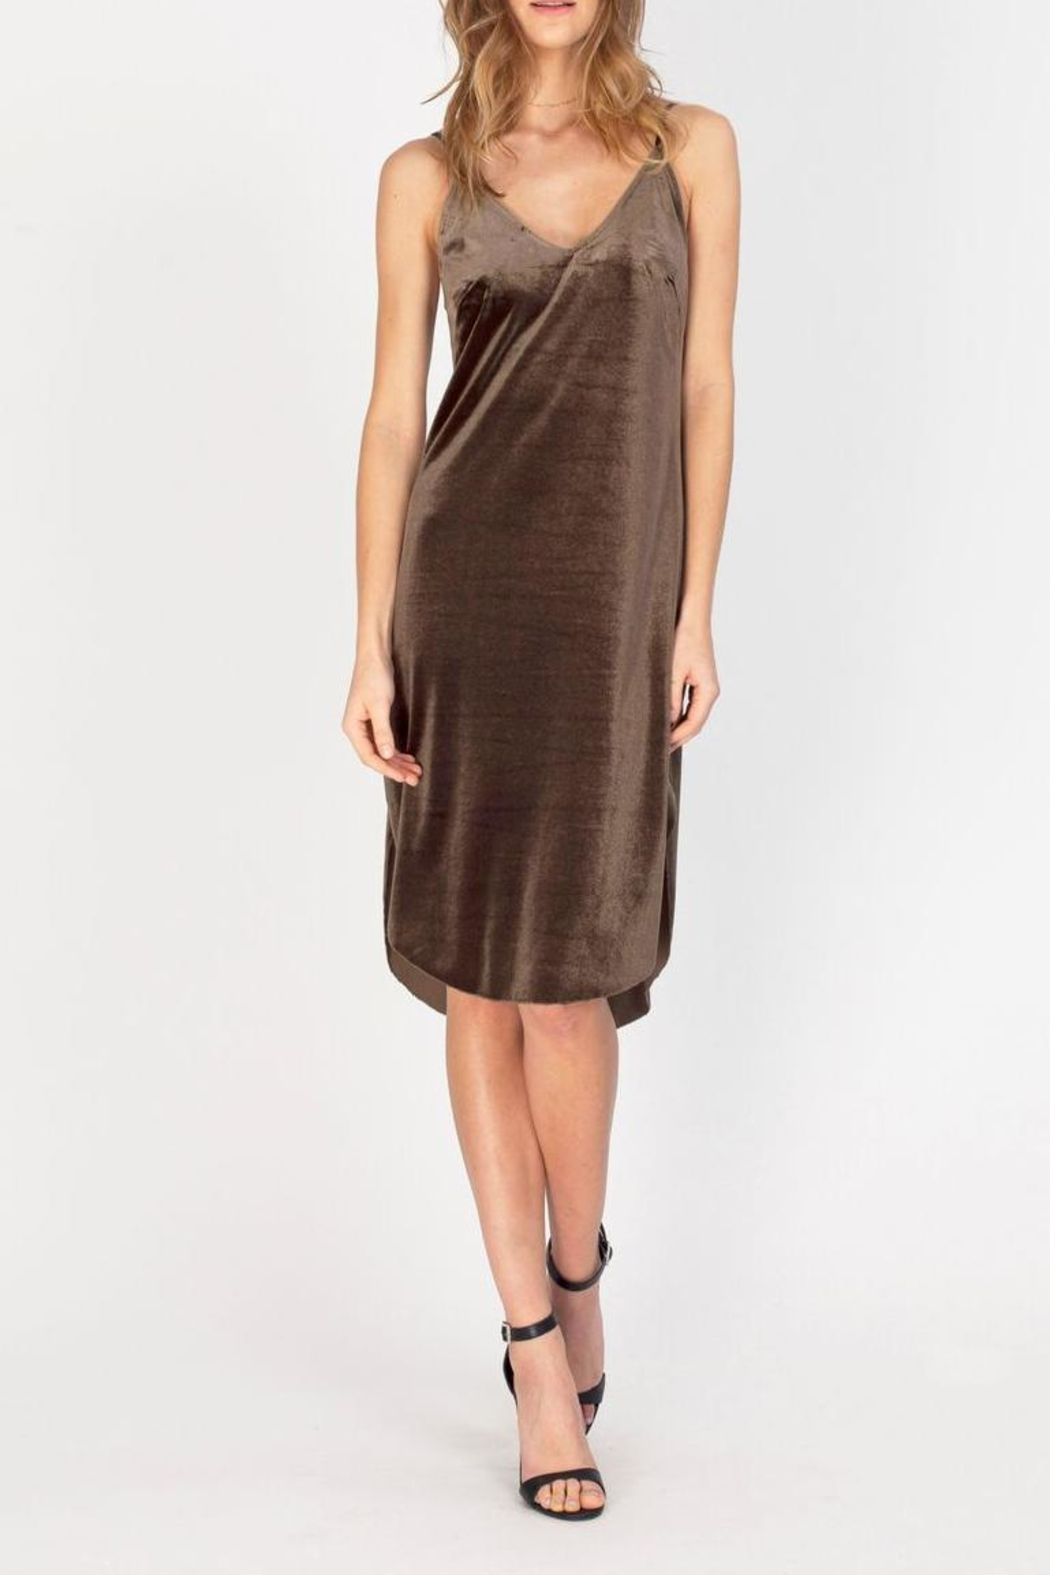 Gentle Fawn Velvet Slip Dress - Main Image